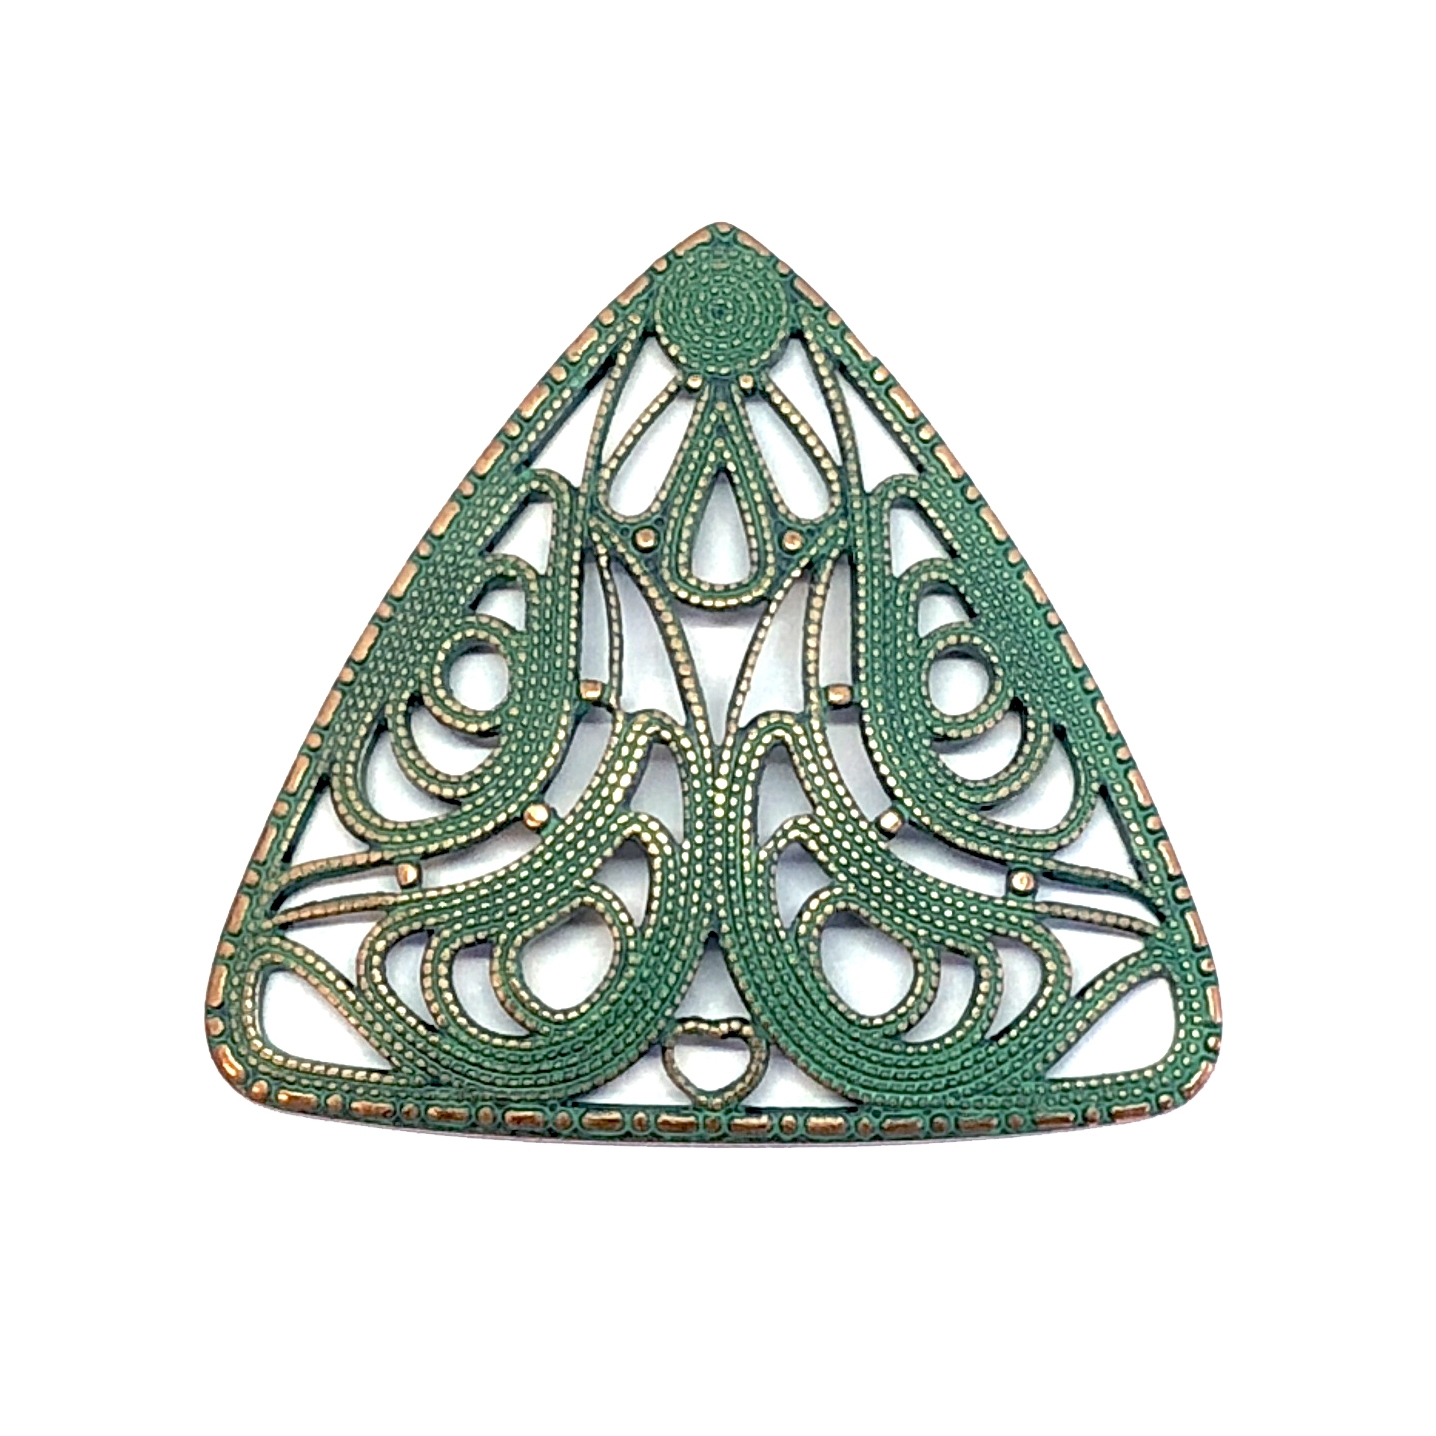 triangular filigree, aqua copper patina, brass, antique copper, filigree, triangular, collar filigree, 37x40mm, us made, nickel free, B'sue Boutiques, jewelry making, vintage supplies, jewelry supplies, cage work, filigree stamping, 08206